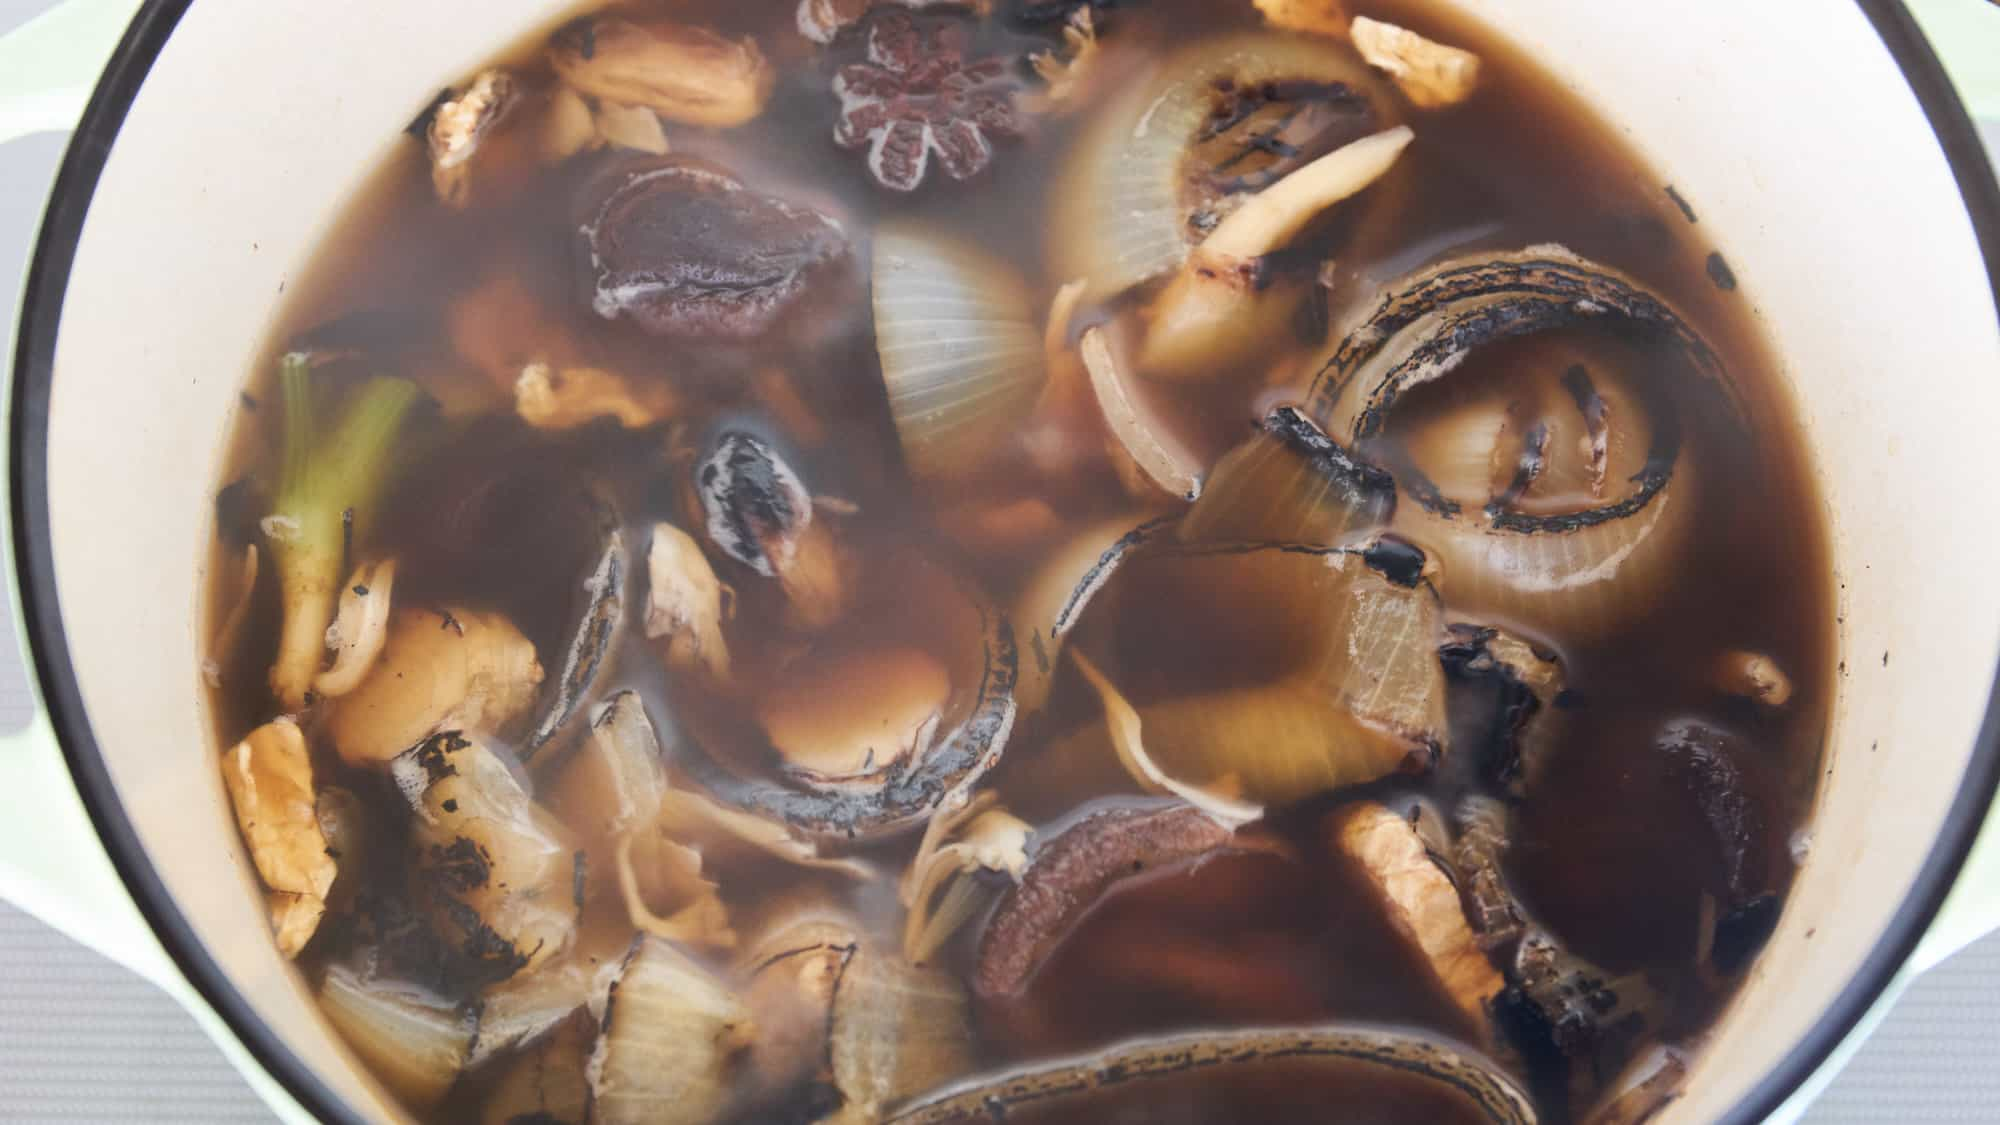 Charred aromatics and dried mushrooms simmering in a dutch oven for vegan pho recipe.